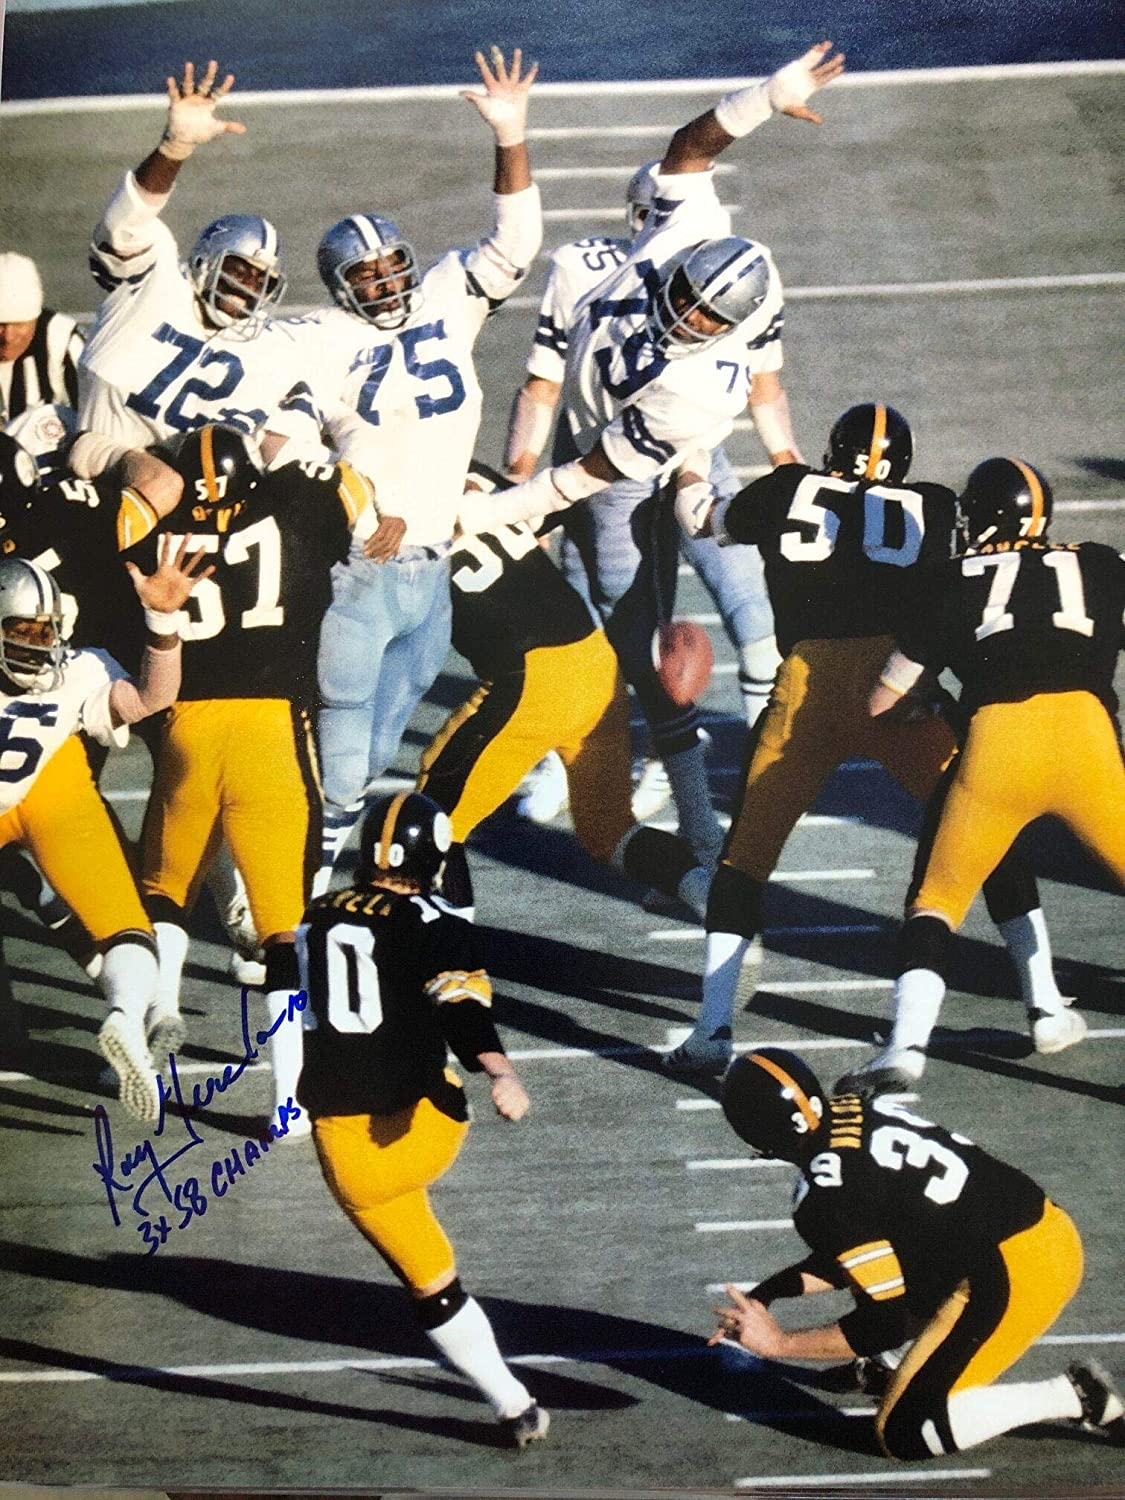 Autographed Roy Gerela Pittsburgh Steelers Football 11x14 Photo with COA - Autographed NFL Photos